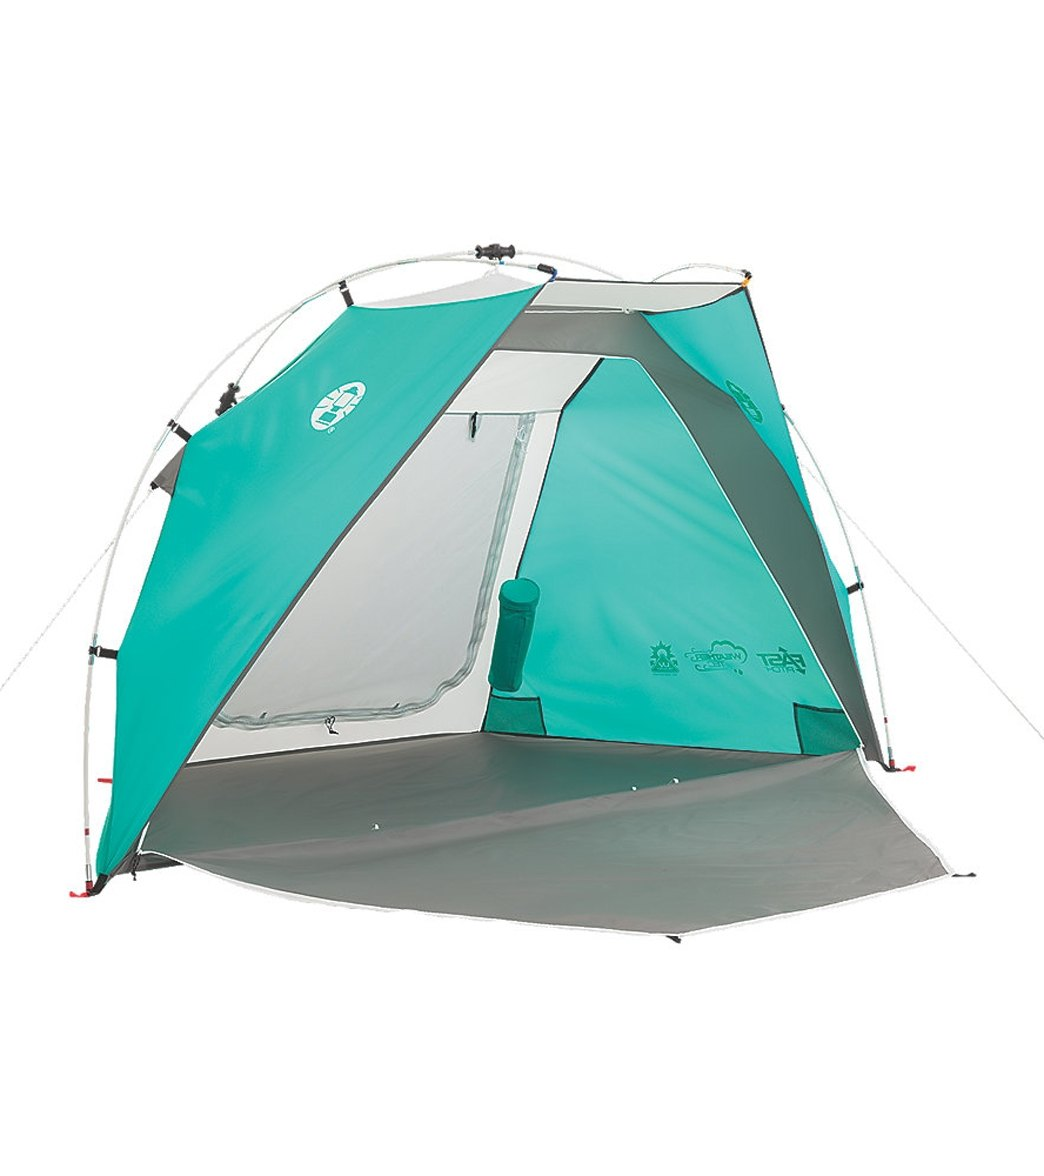 Coleman Hatteras Fast Pitch Beach Tent with Drink Sleeve at SwimOutlet.com - Free Shipping  sc 1 st  SwimOutlet.com & Coleman Hatteras Fast Pitch Beach Tent with Drink Sleeve at ...